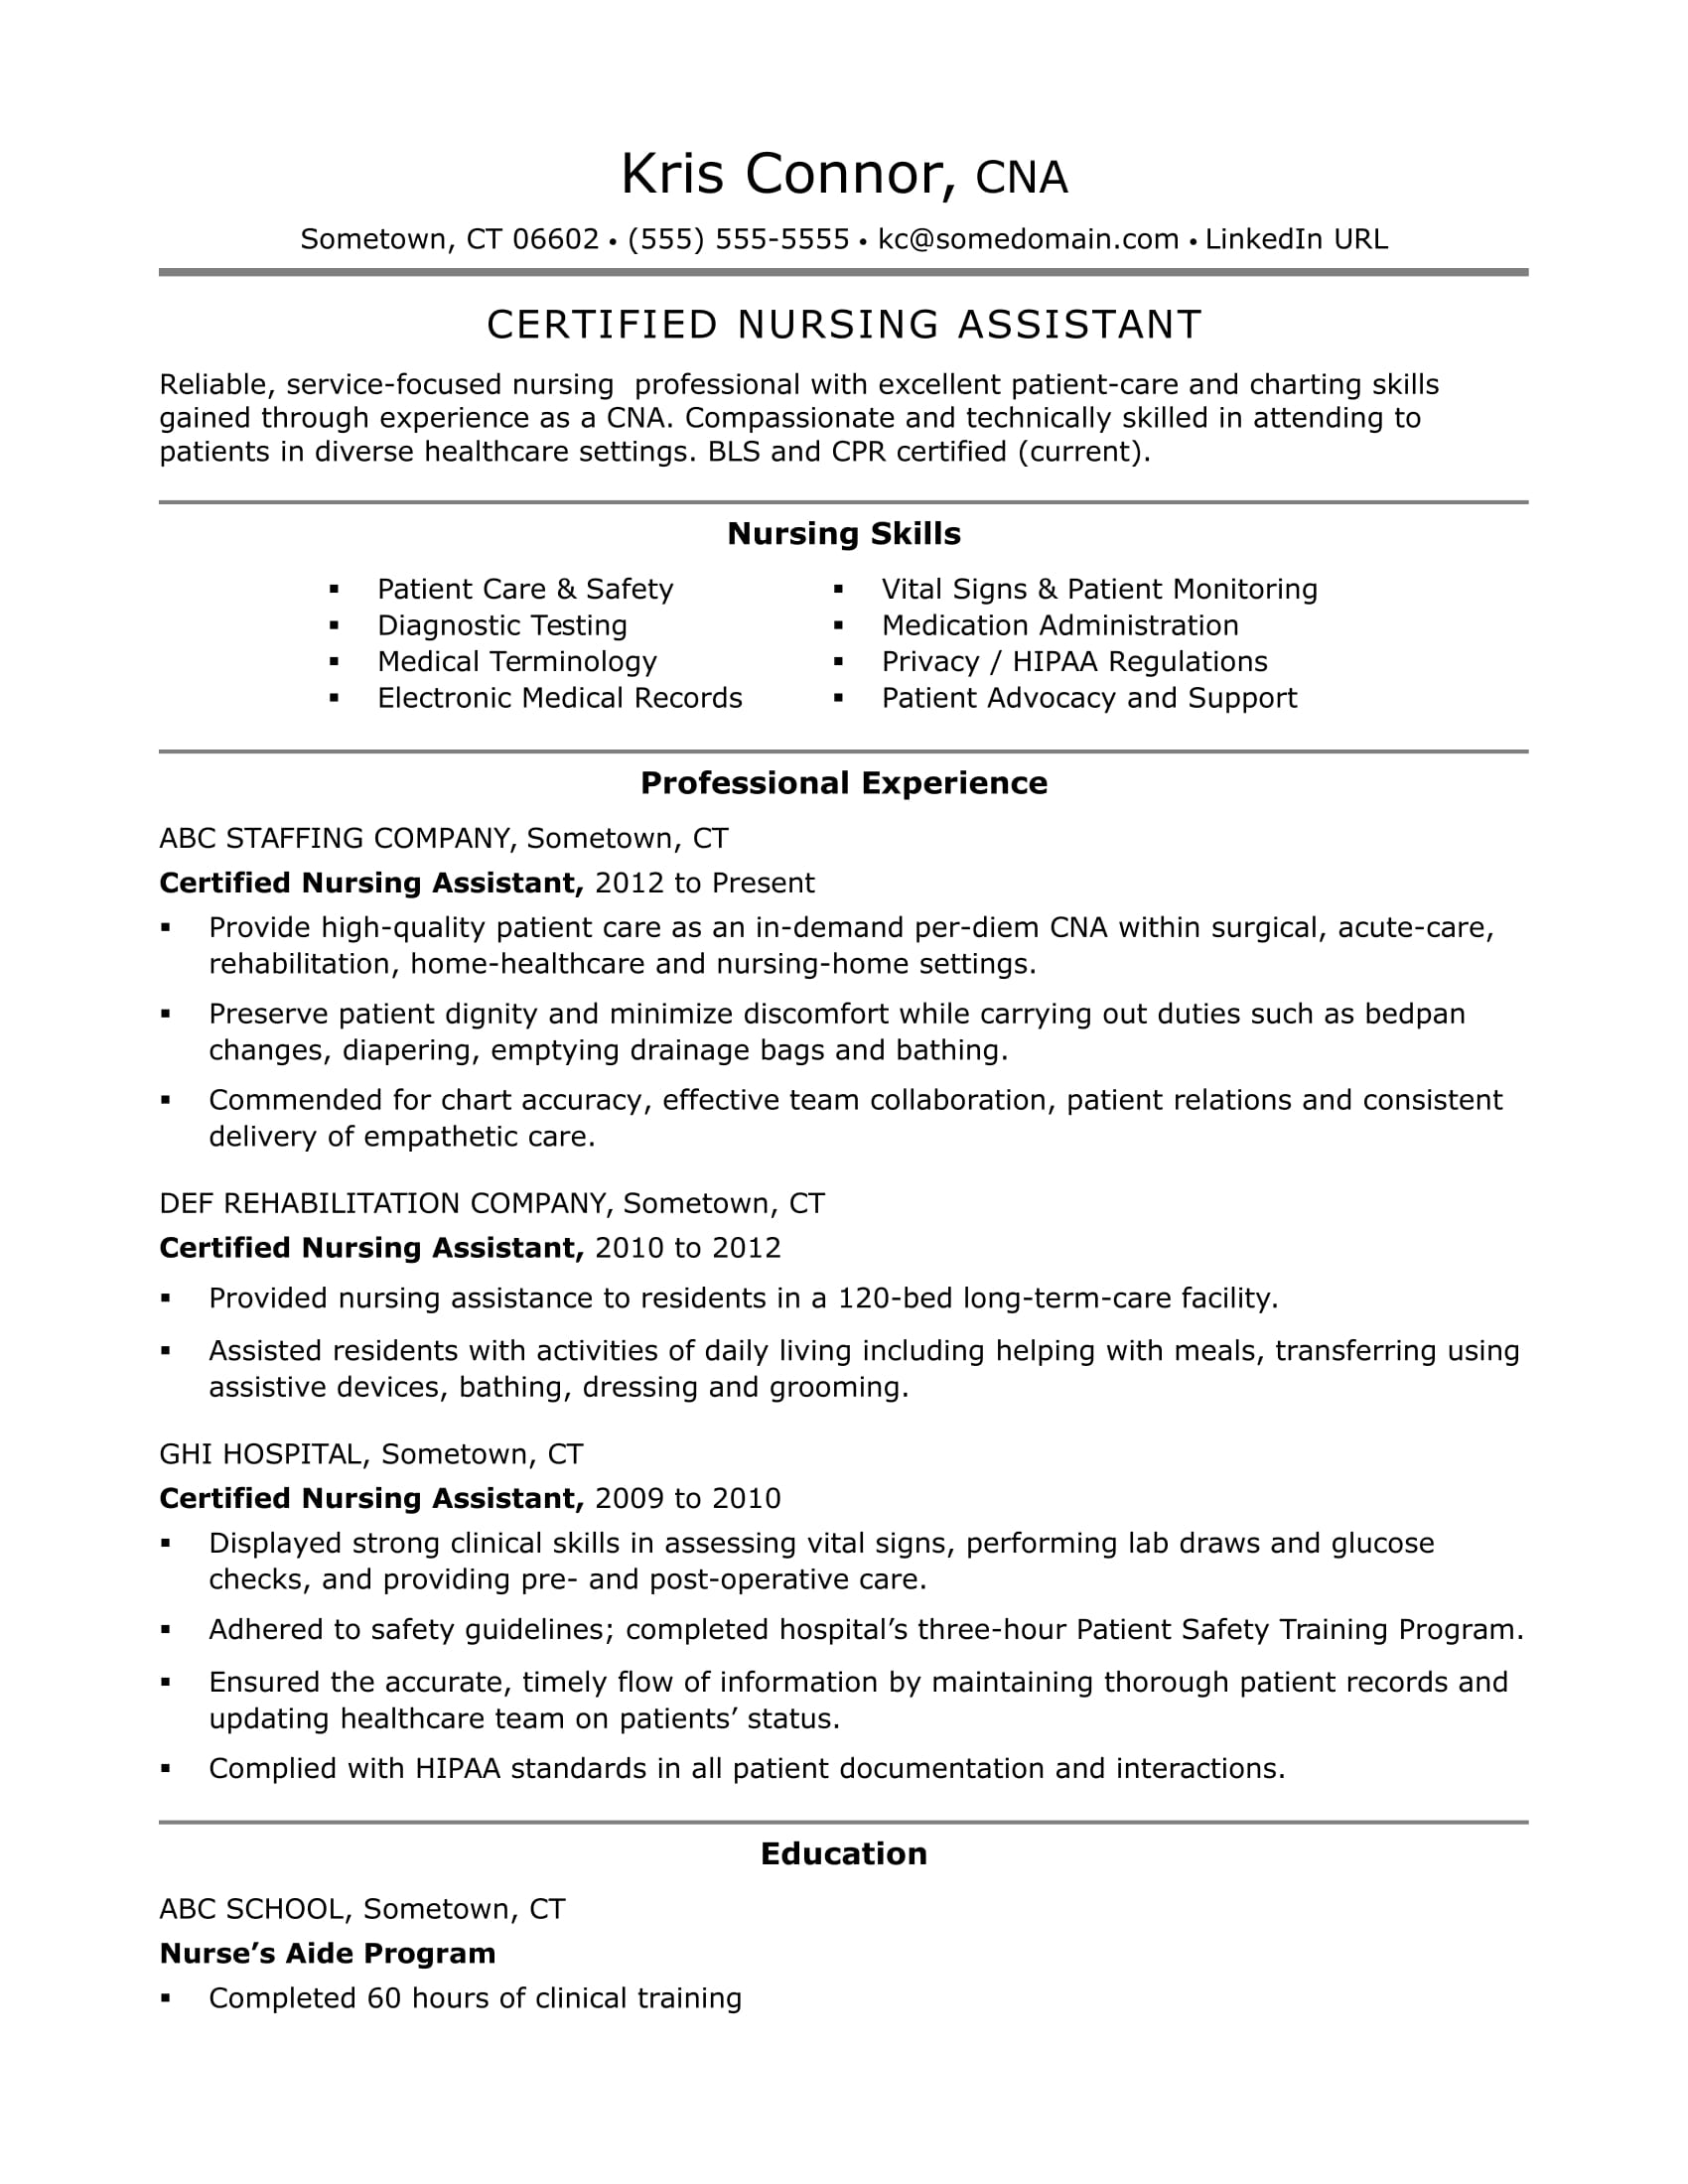 cna resume examples skills for cnas monster another word assisted on certified nursing Resume Another Word For Assisted On Resume